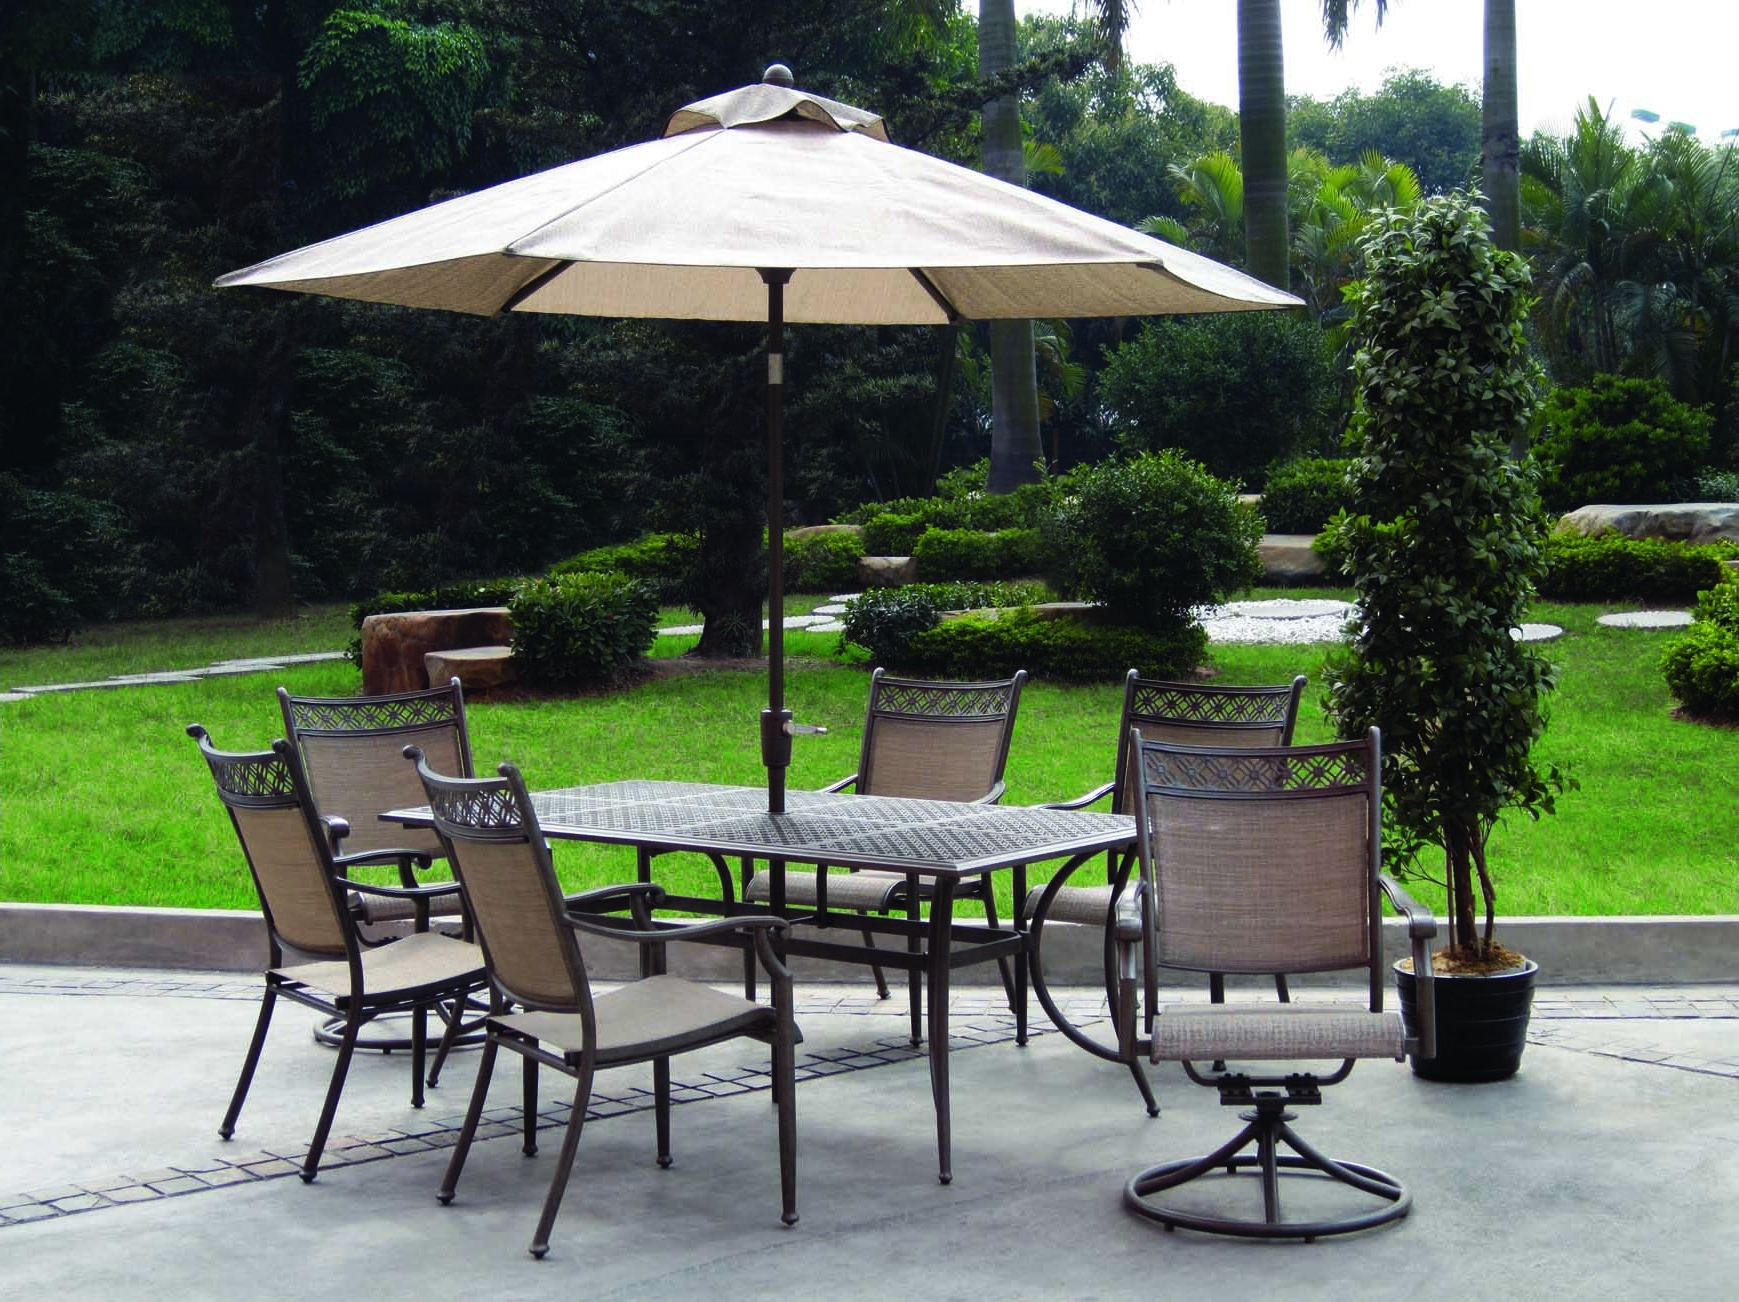 Patio Furniture With Umbrellas With Regard To Most Recently Released Home Depot Outdoor Furniture Umbrellas With 2 Swivel Chair Pine (View 9 of 20)